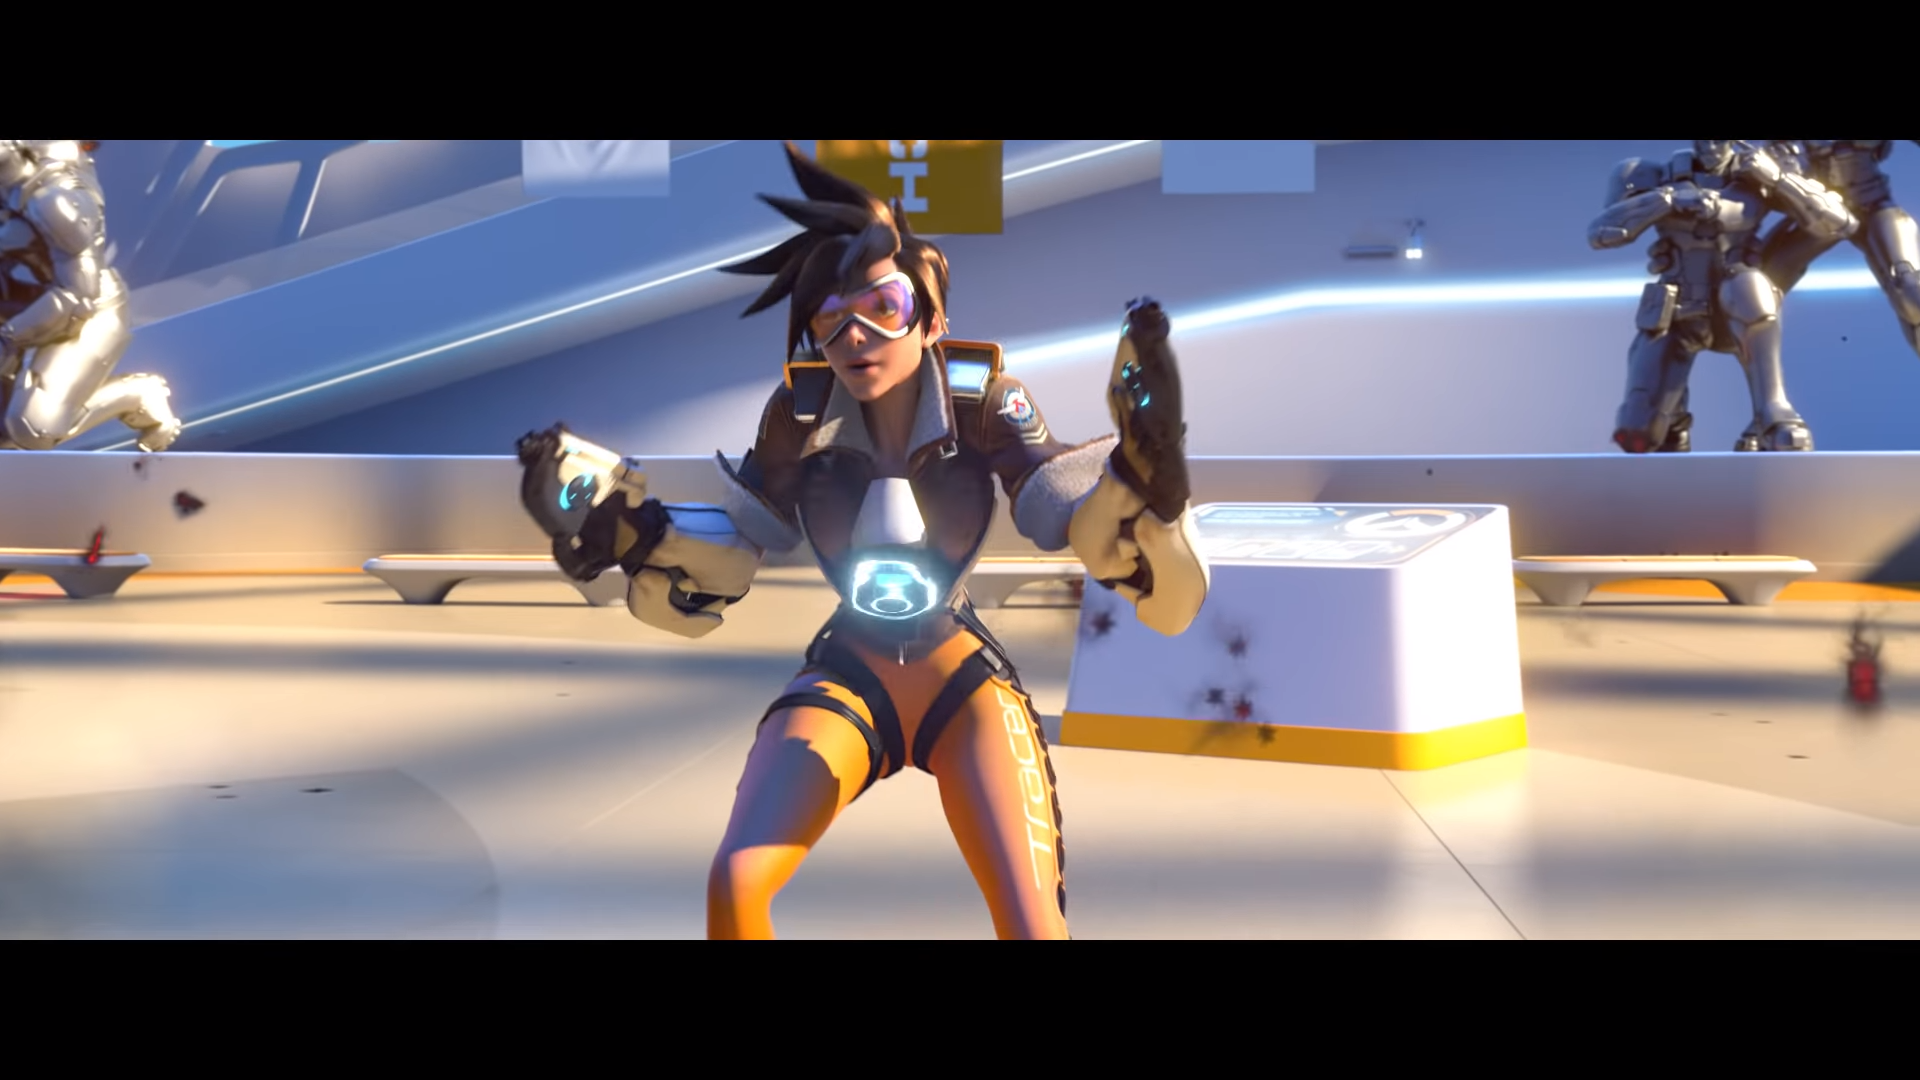 Overwatch Is Temporarily Free To Play Until December 4th With All Heroes And Maps Blizzard Overwatch Overwatchleag Overwatch Free To Play New Arcade Games